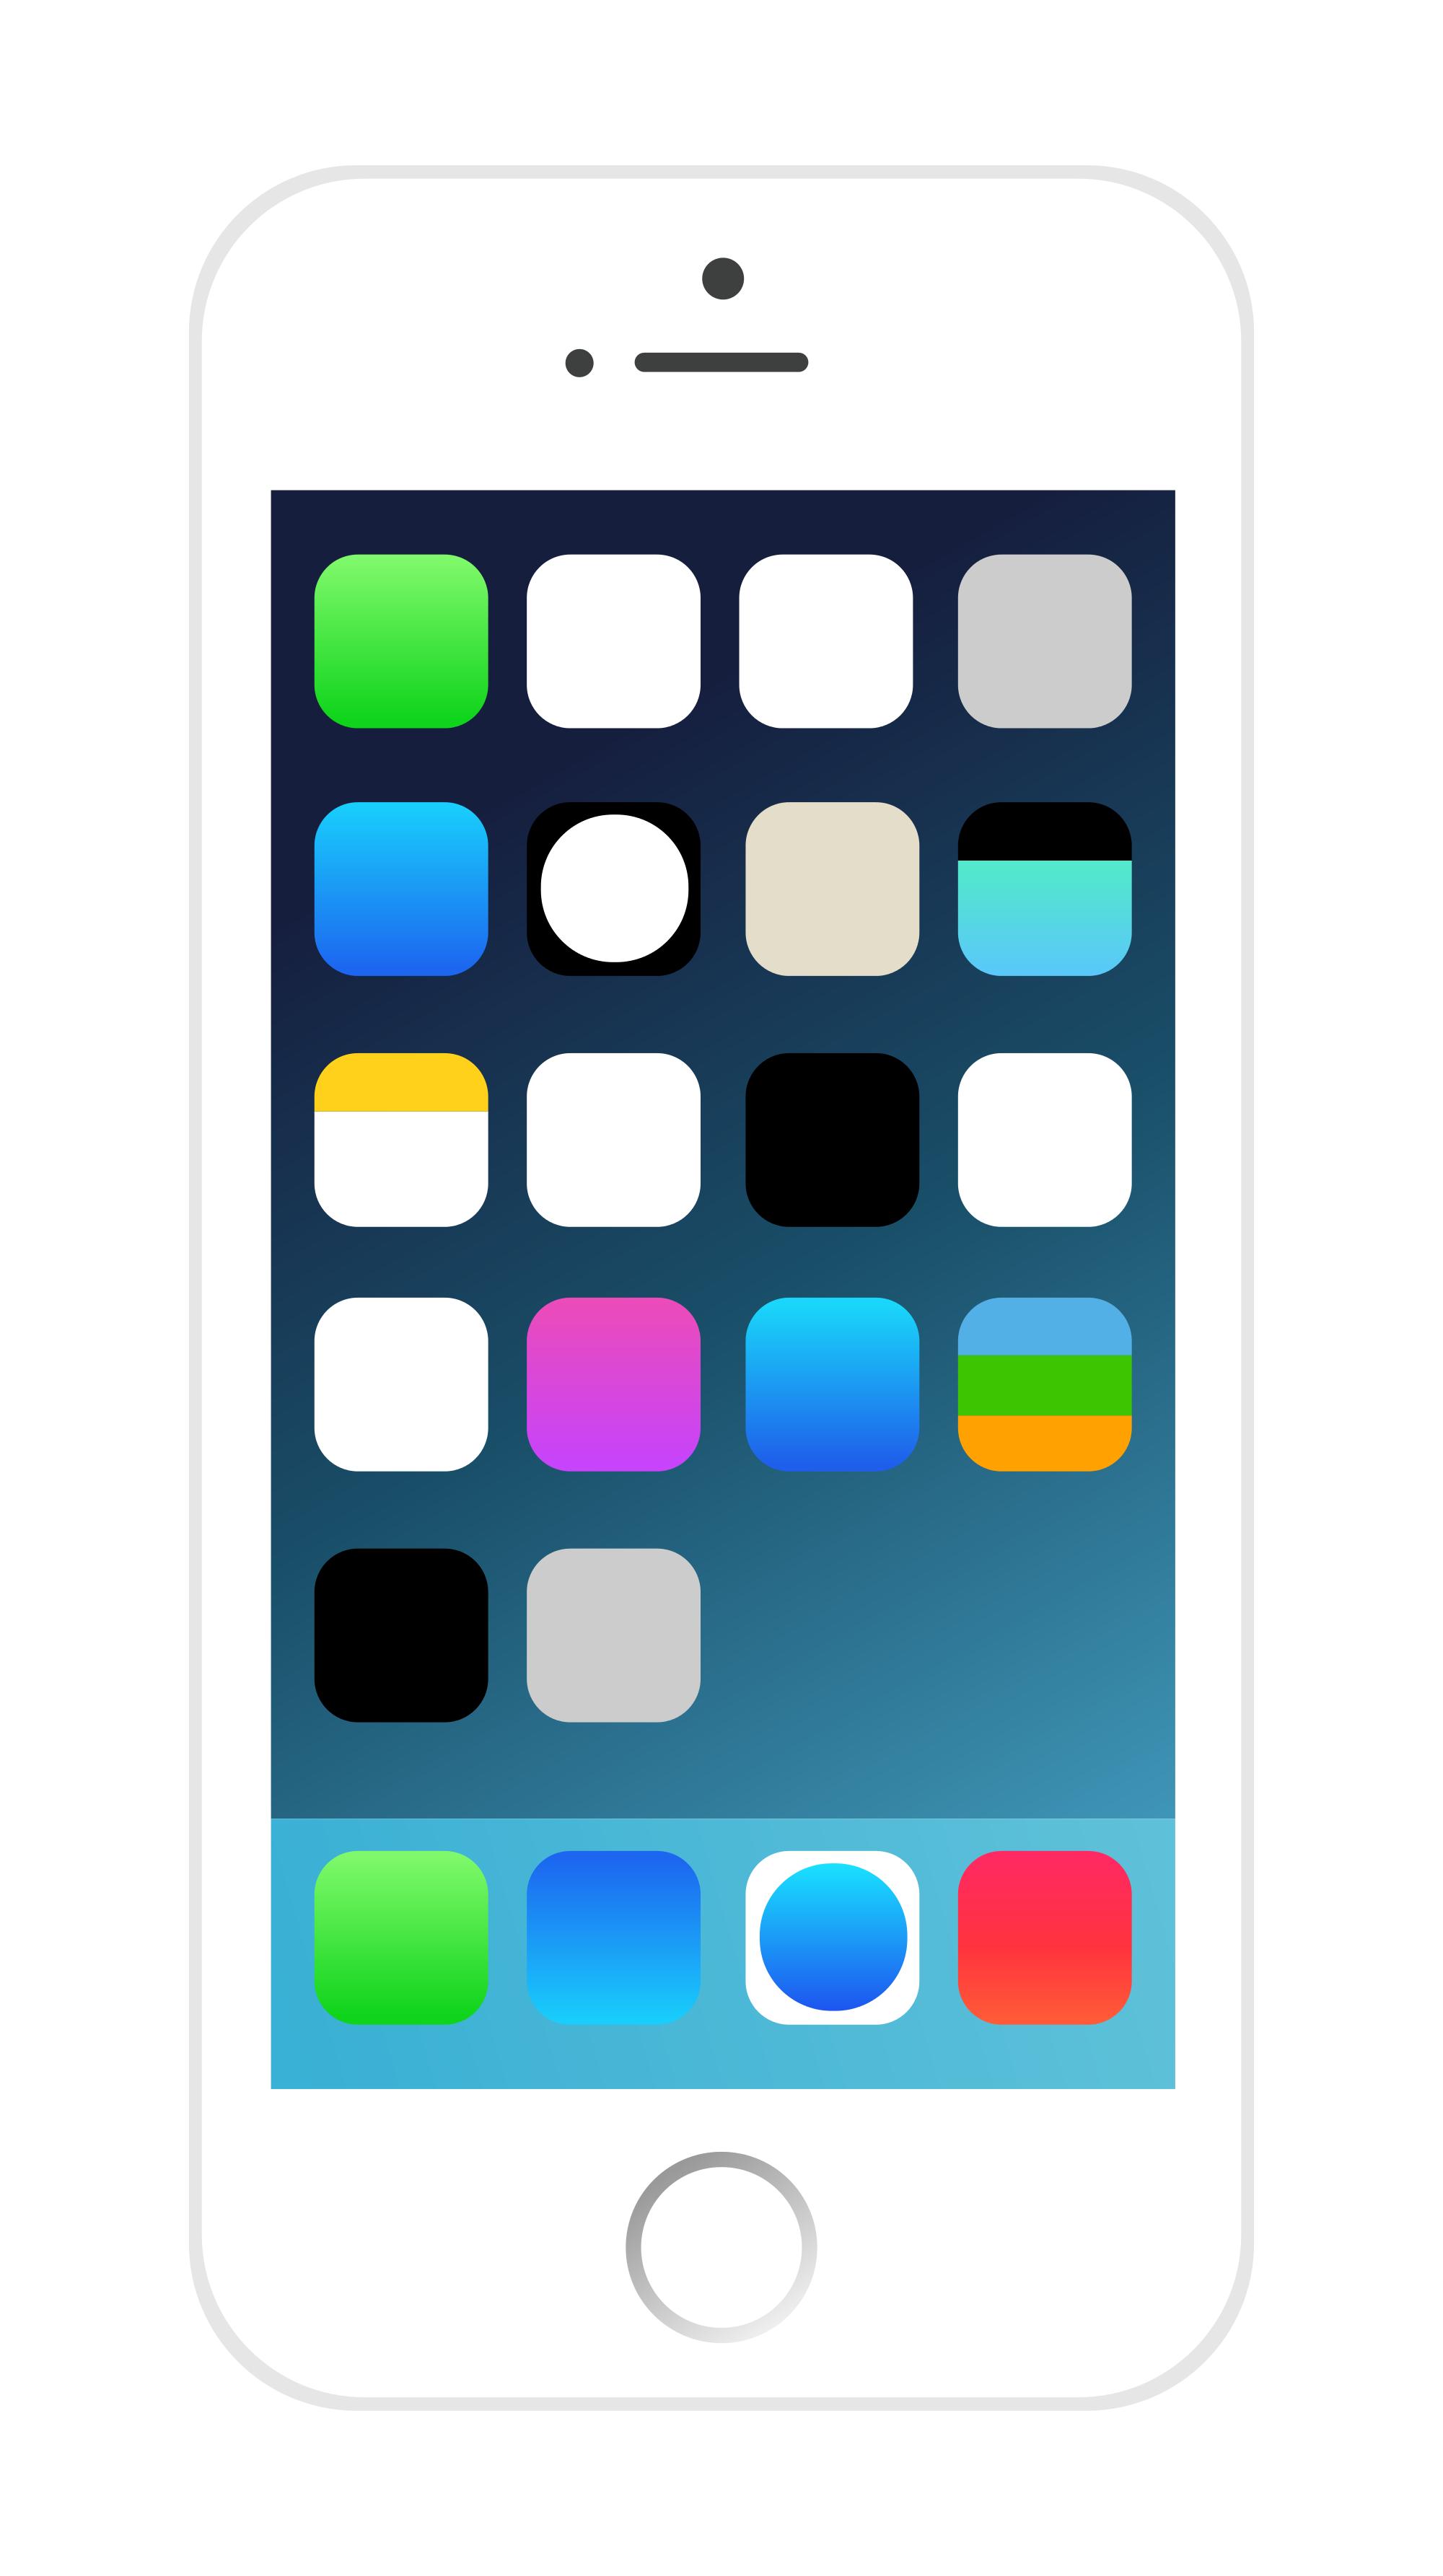 Iphone clipart svg Svg Open Wikimedia File:iPhone icons